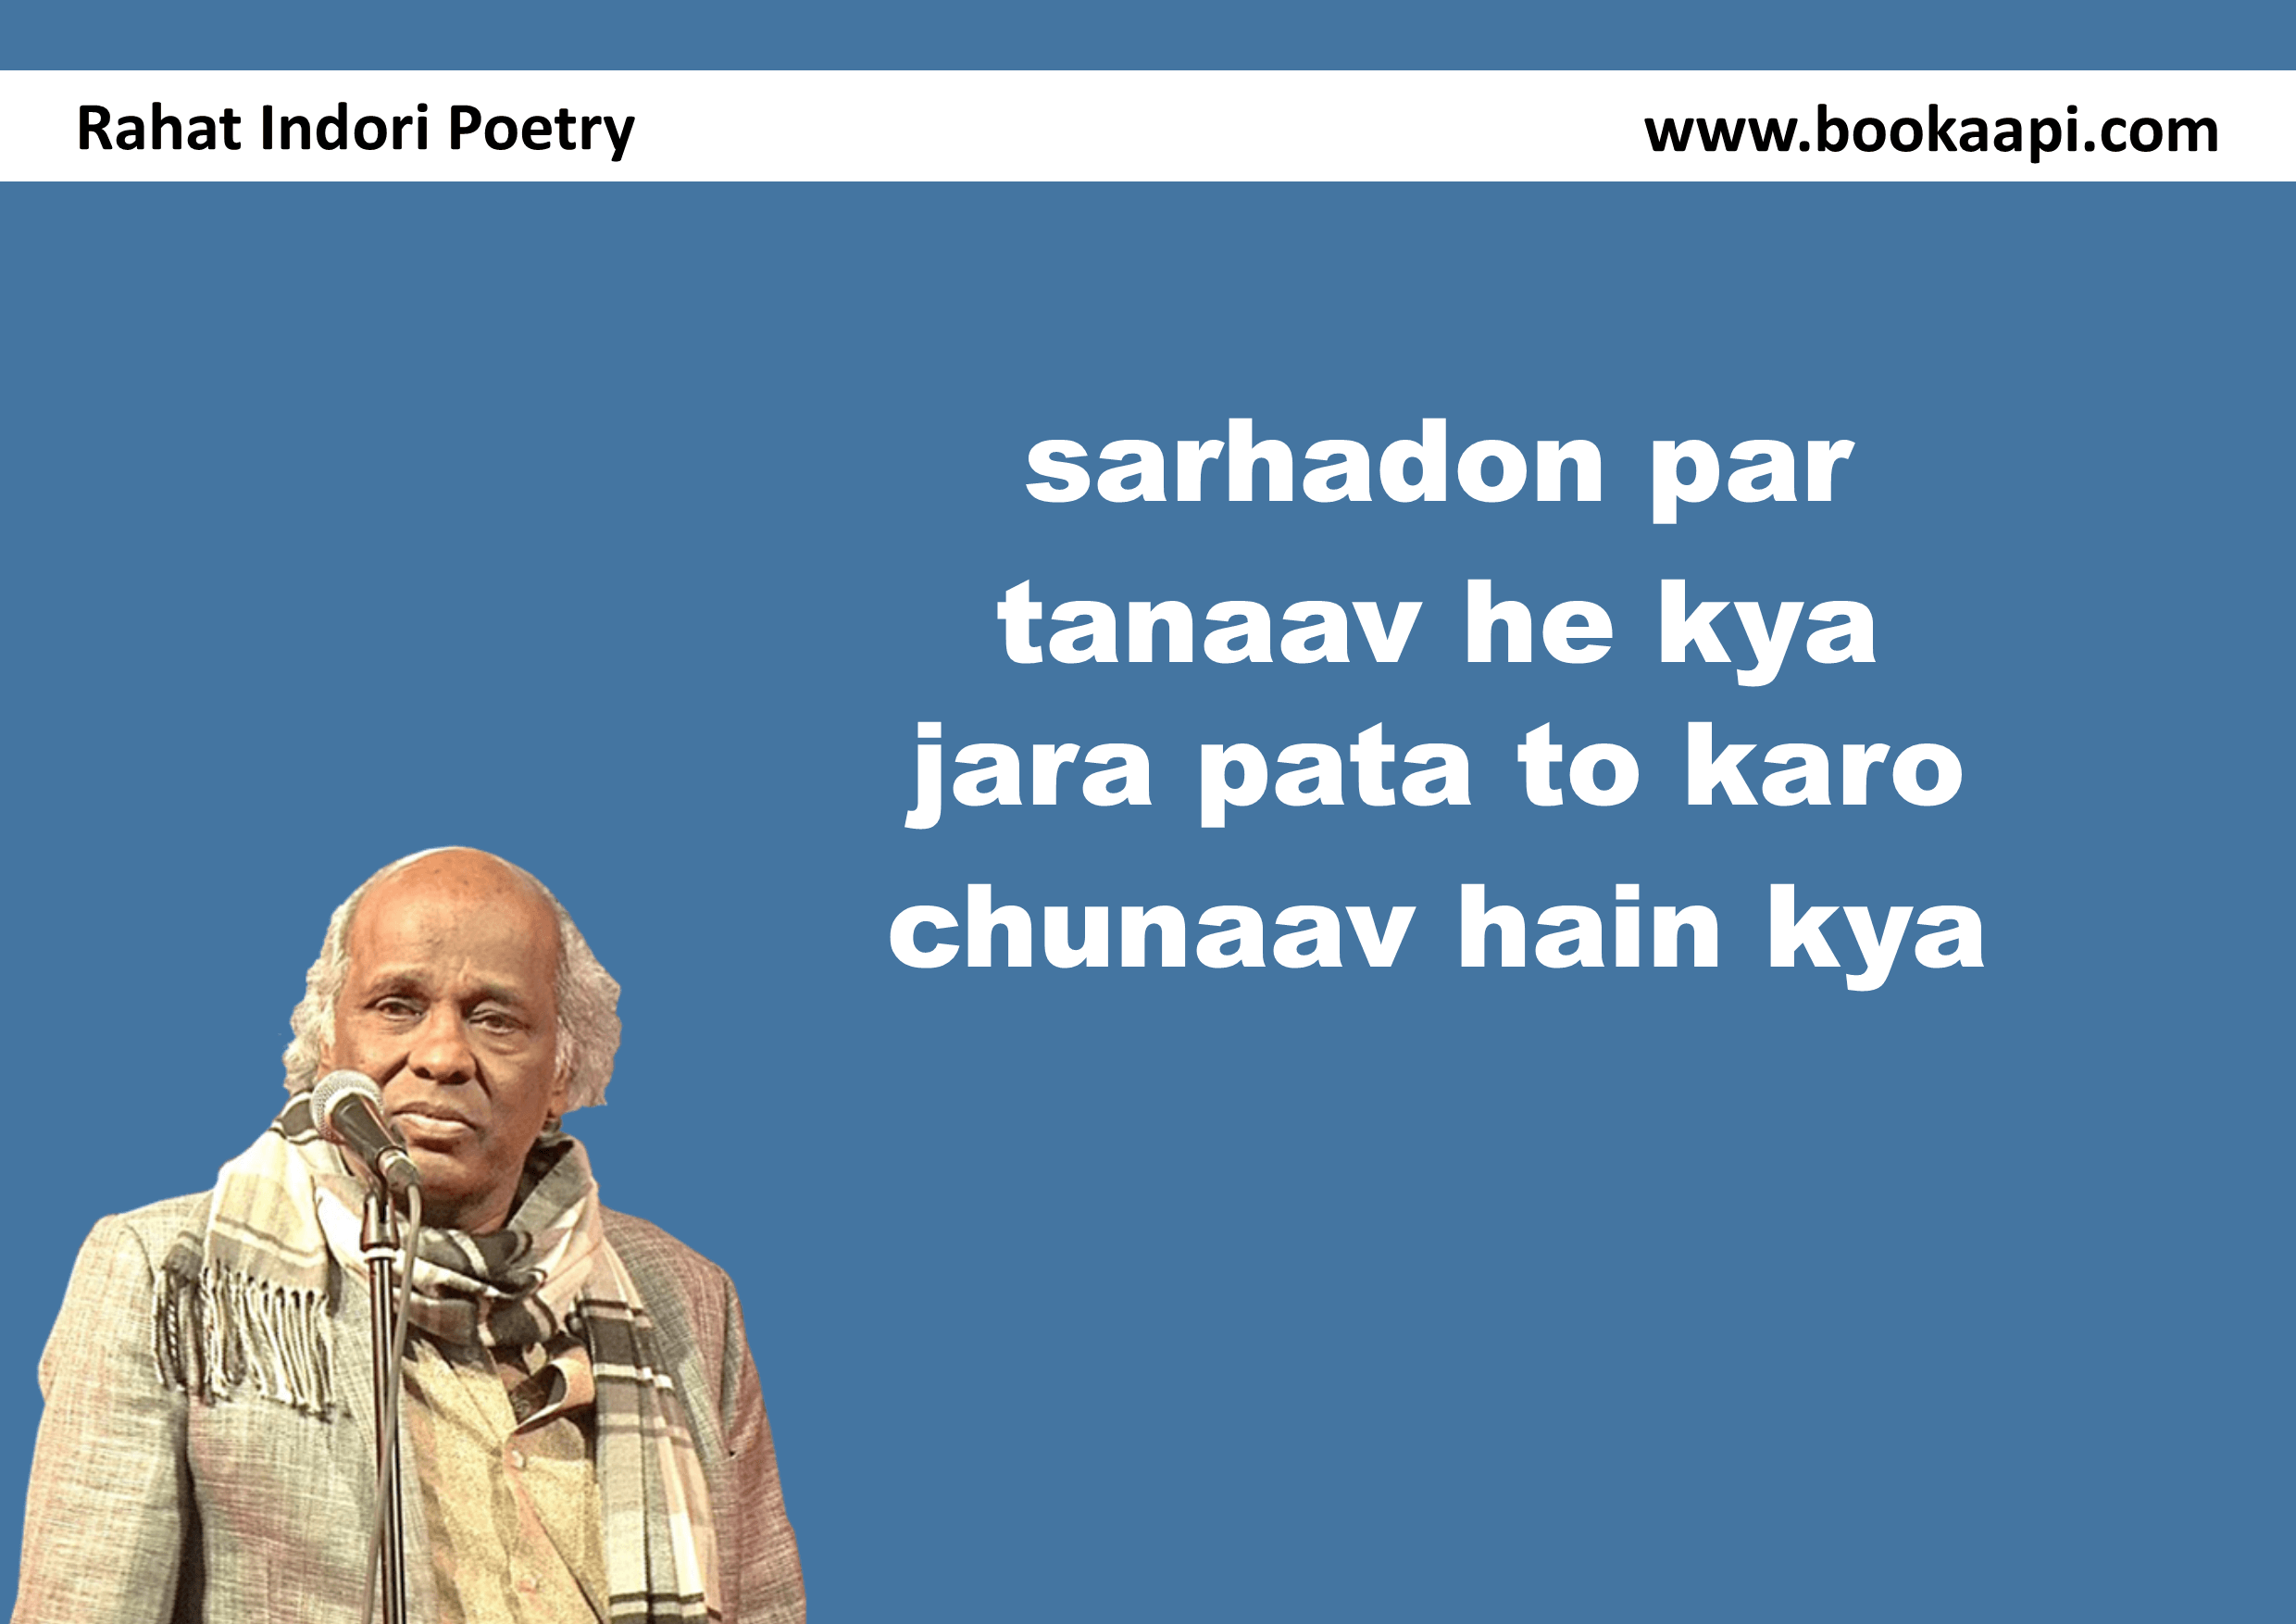 Sharp Rahat Indori Shayari on Politics | Rahat Indori